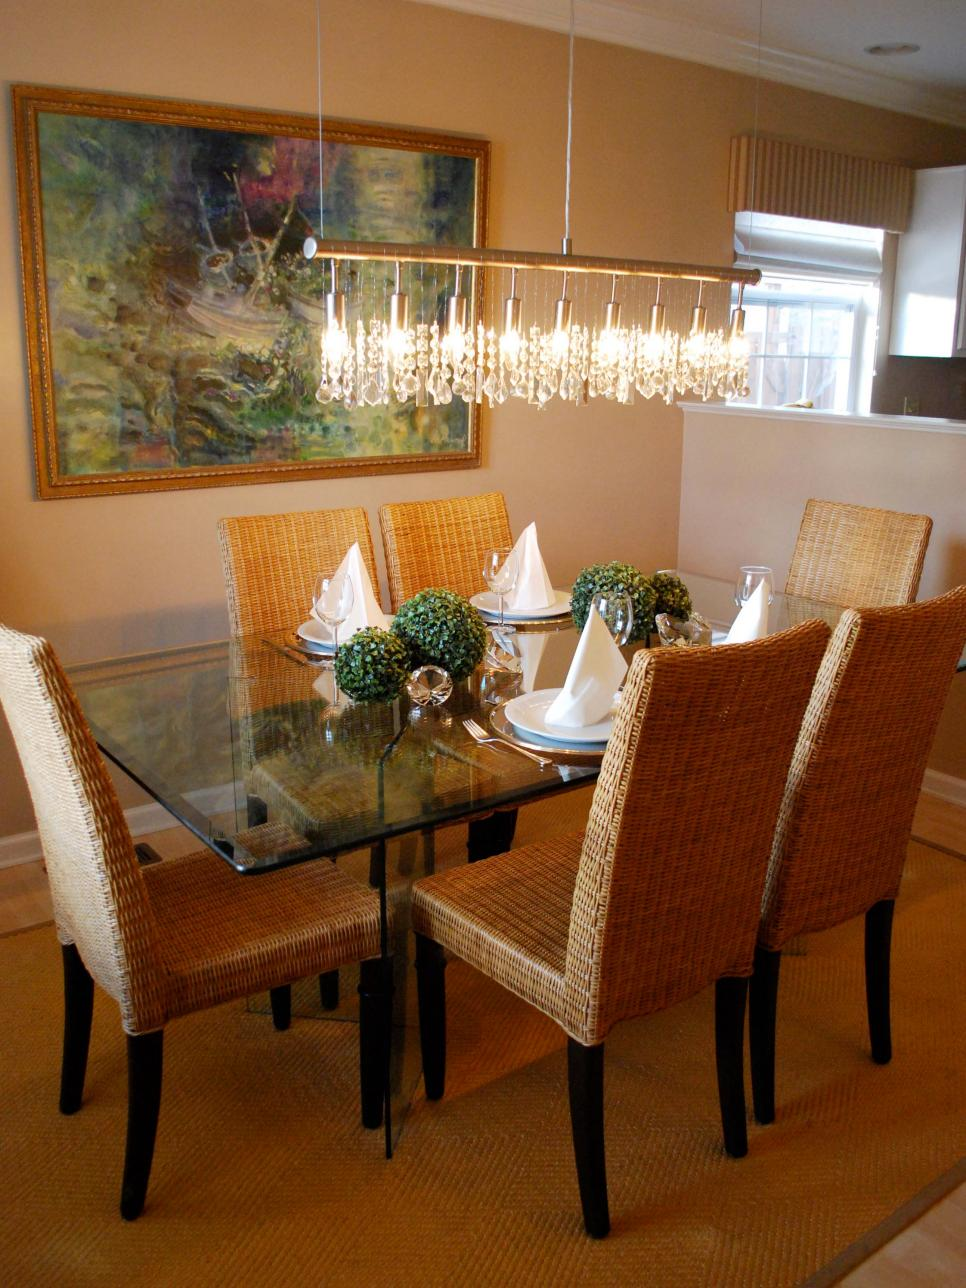 Decorating Dining Room Ideas Dining Rooms On A Budget Our 10 Favorites From Rate My Space  Diy